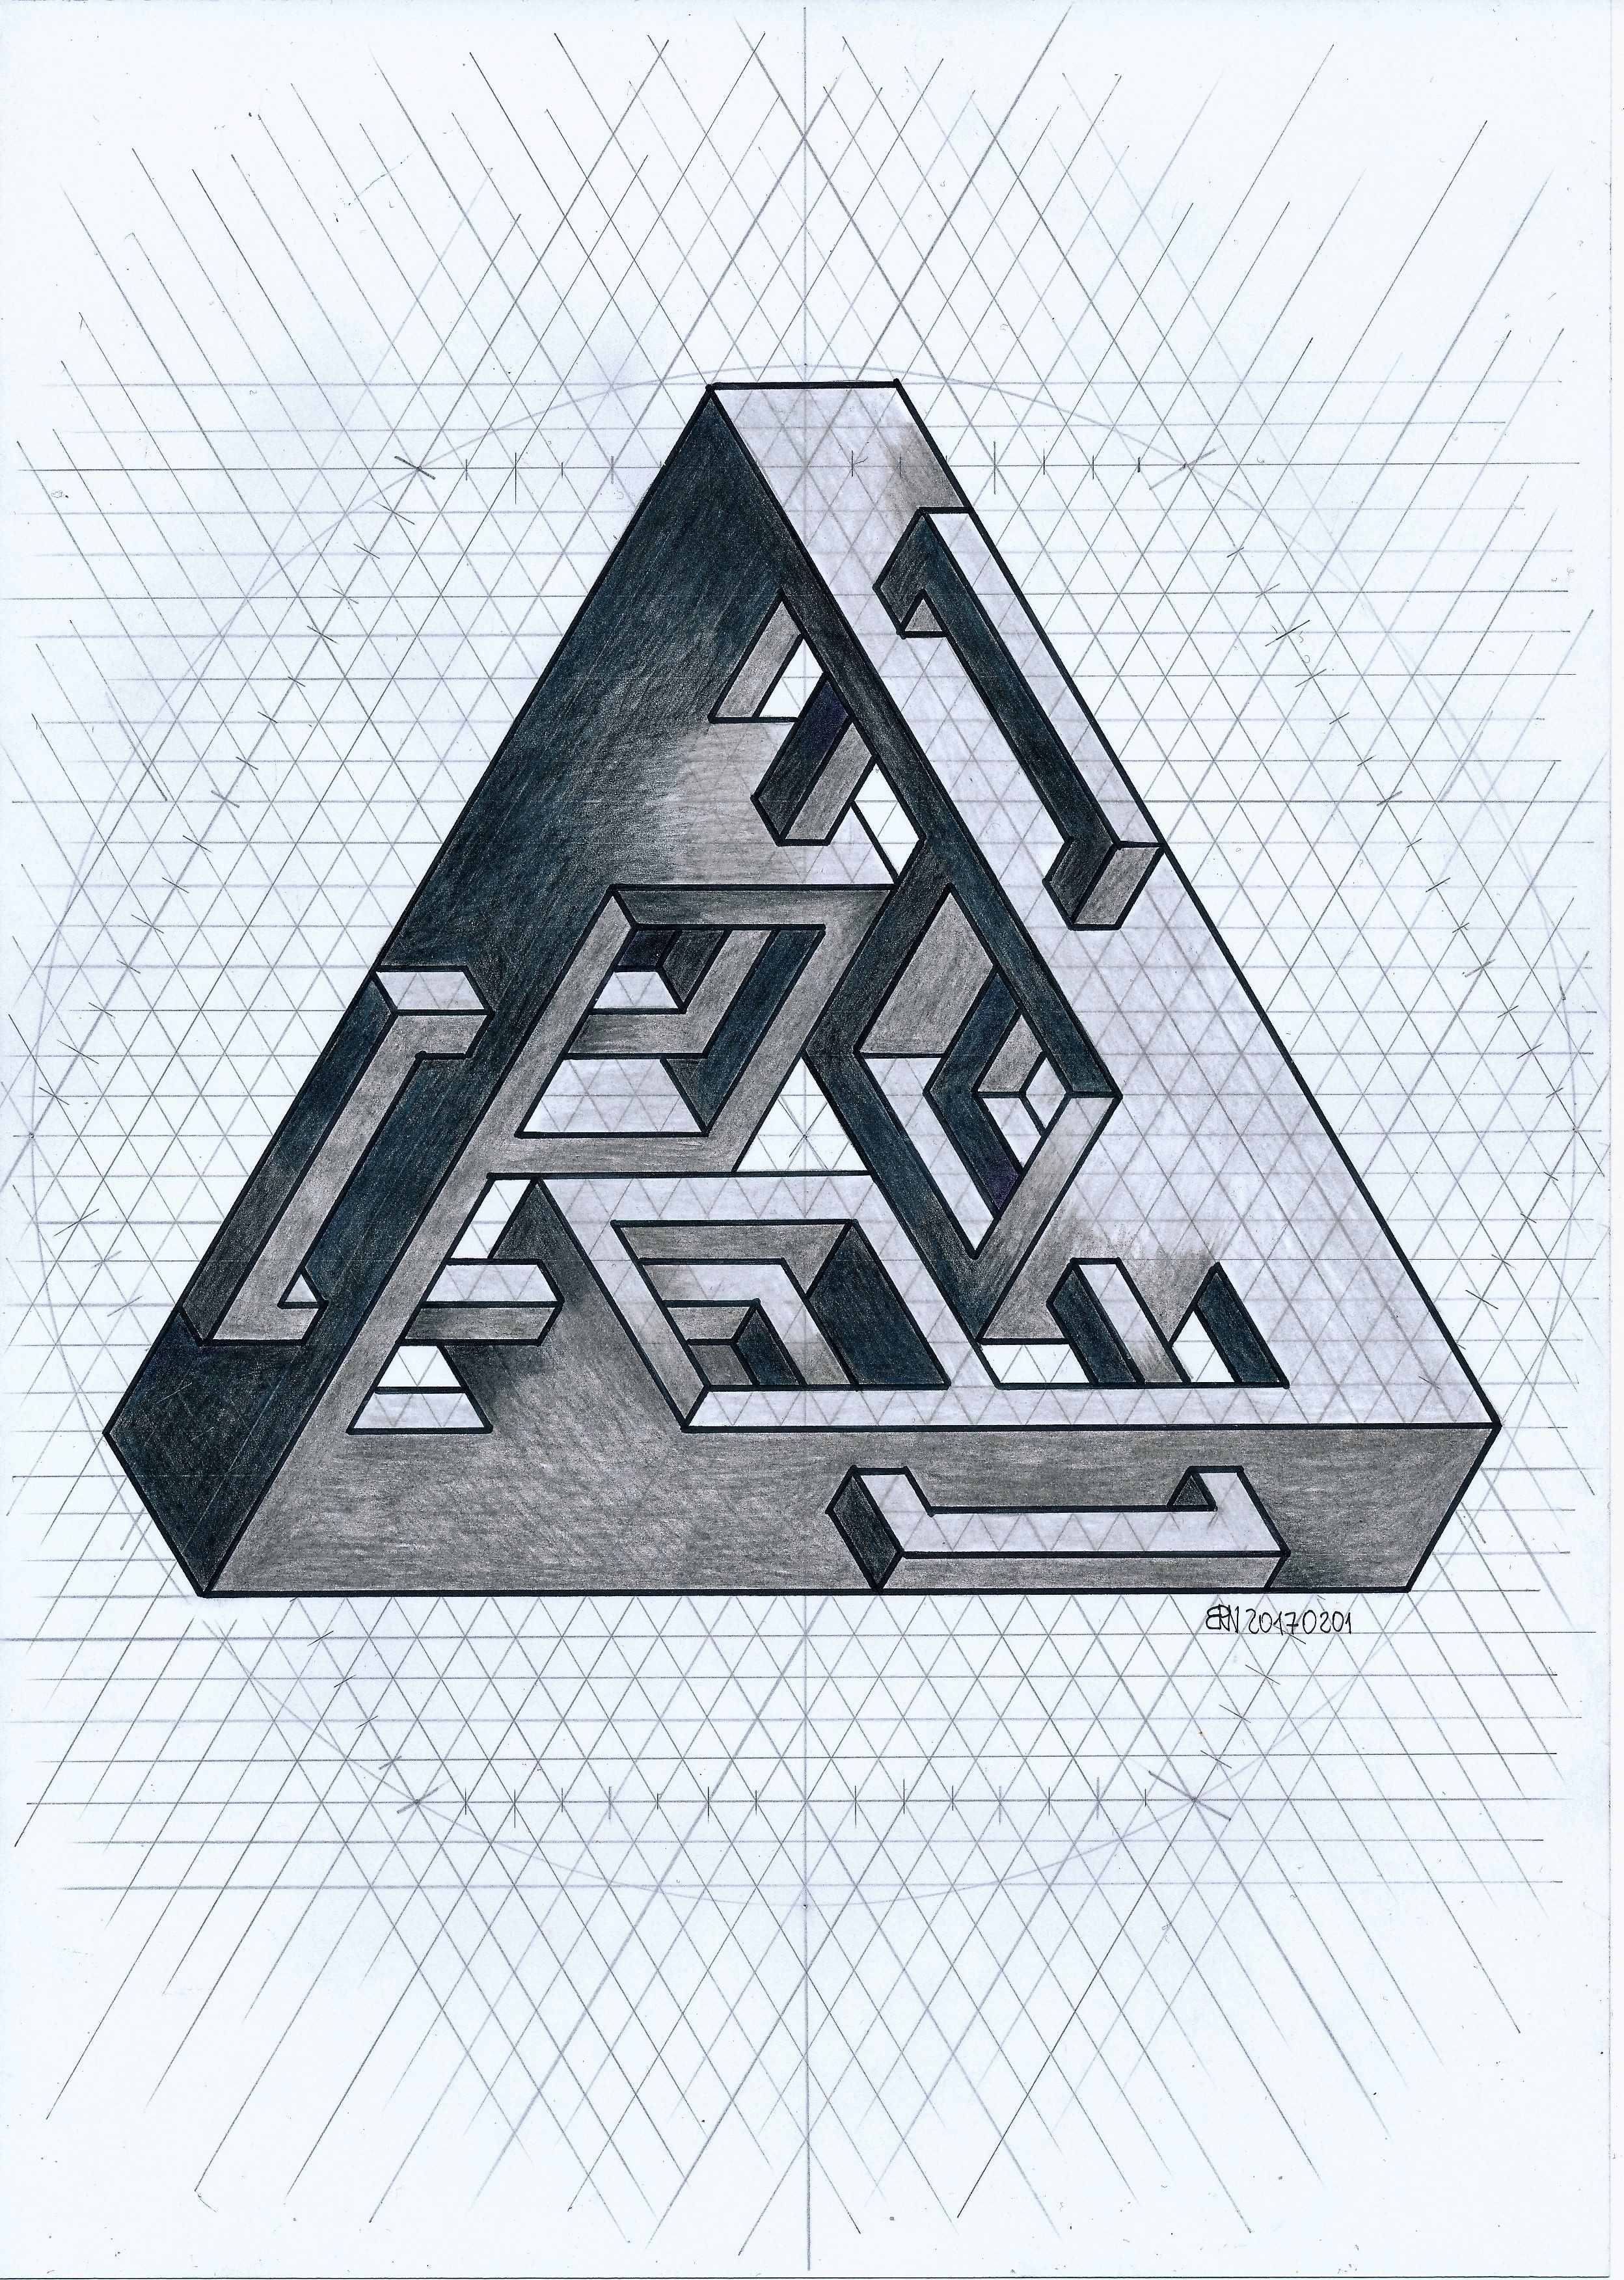 Impossible Isometric Penrose Triangle